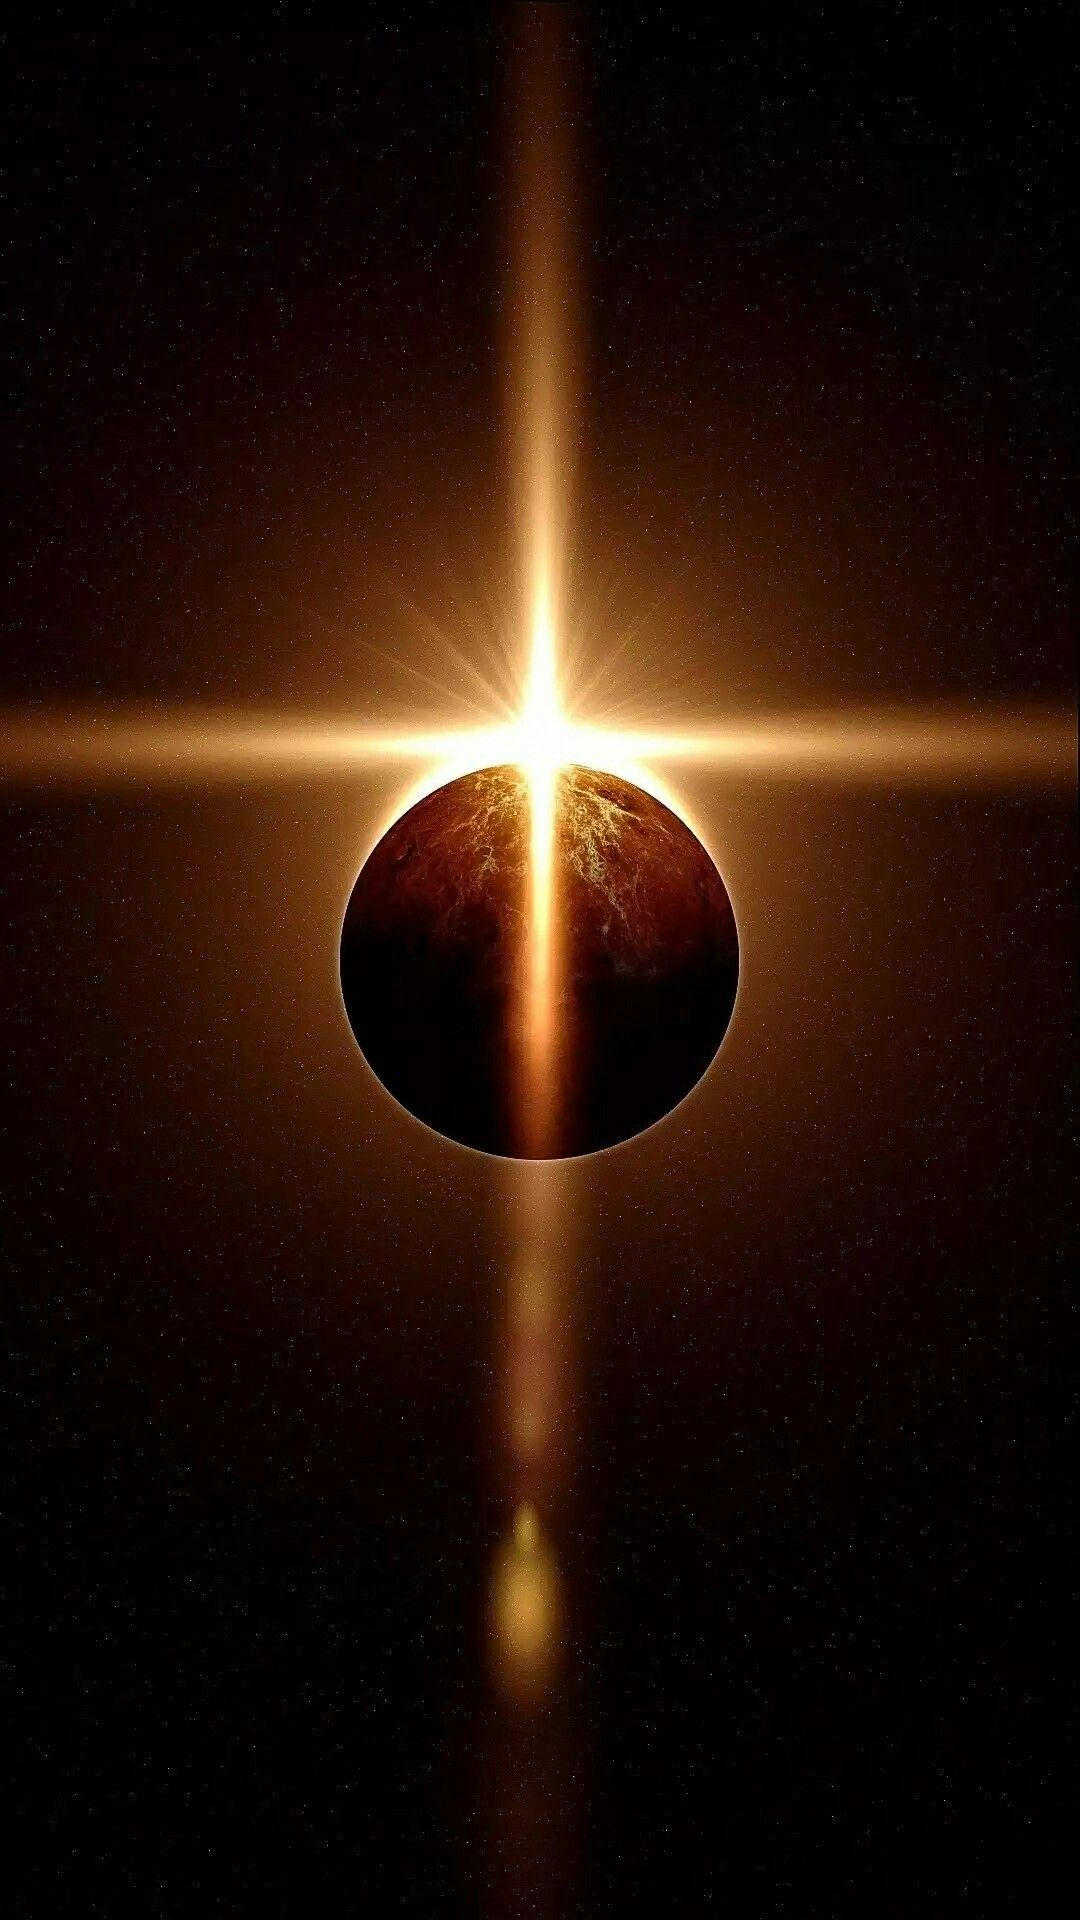 65 Eclipse Laptop Wallpapers   Download at WallpaperBro 1080x1920